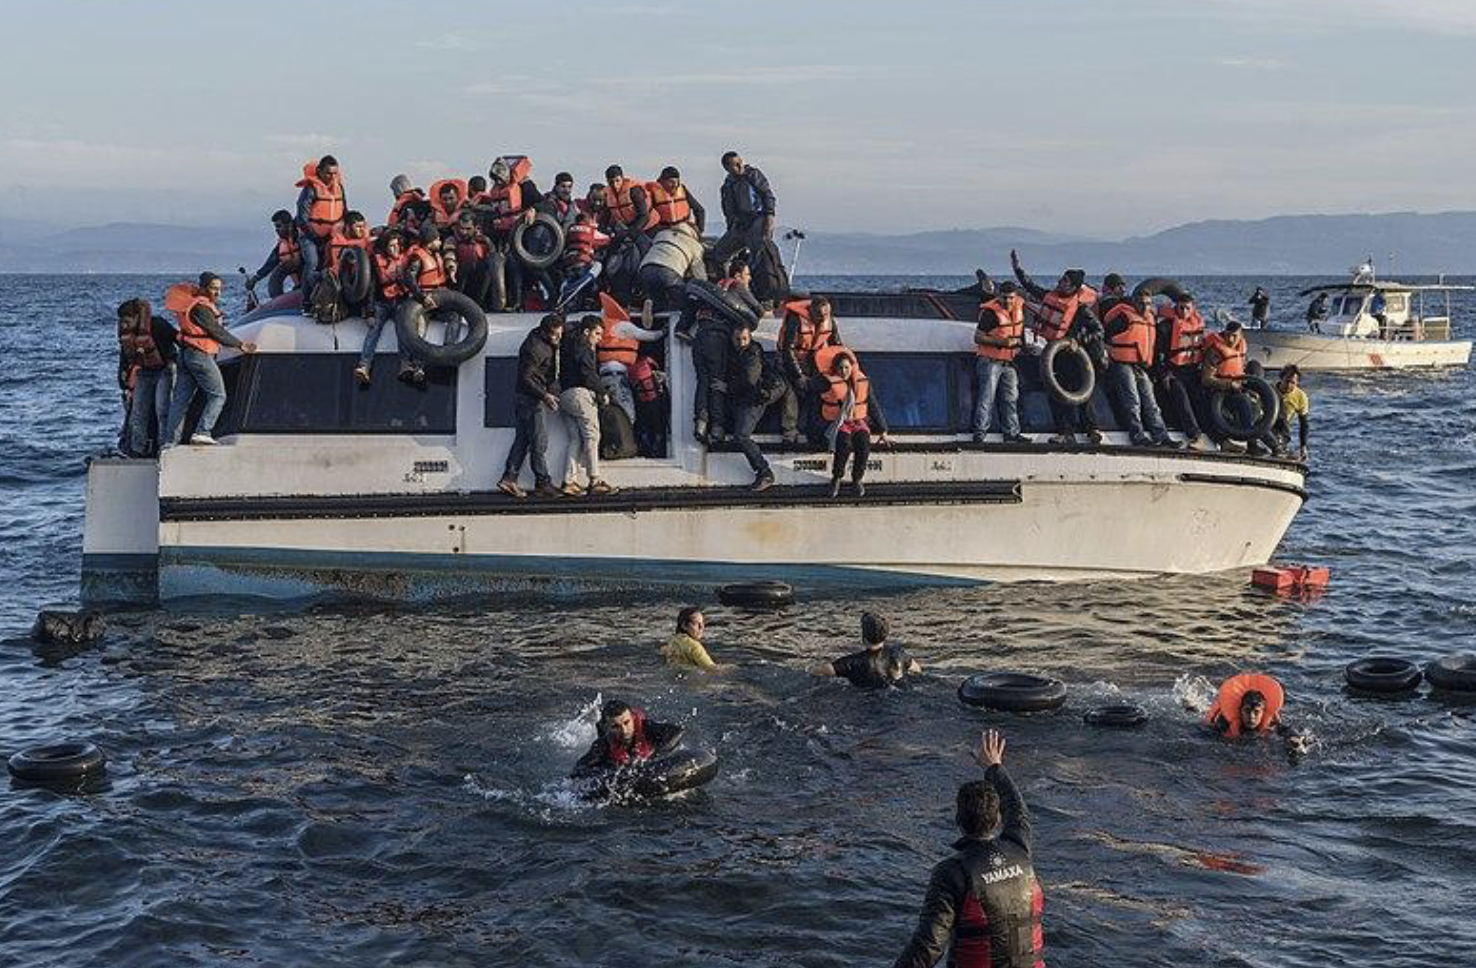 Climate Change and the Syrian Refugee Crisis